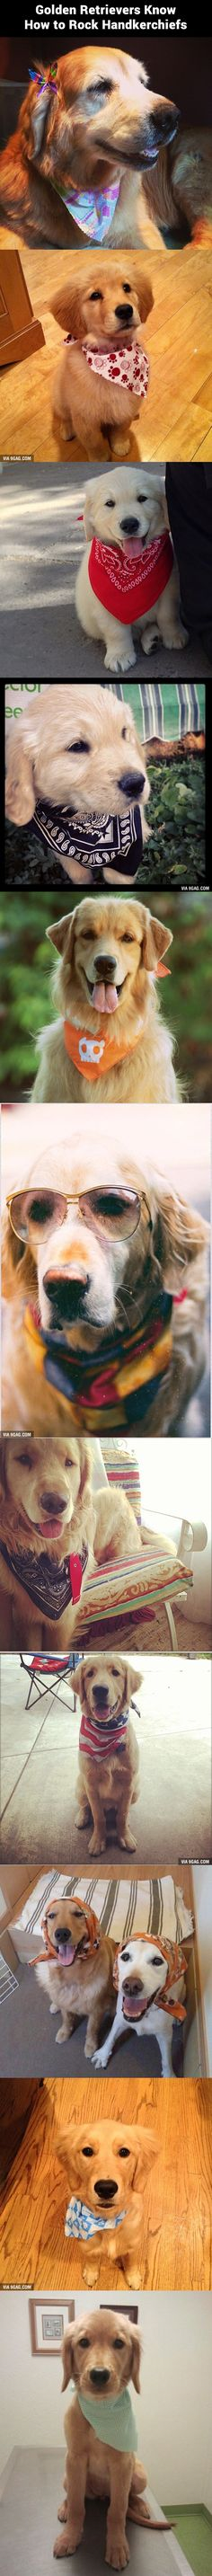 These Golden Retrievers Know How to Rock Handkerchiefs. Makes me want to get My kiddo some hankies!! :)